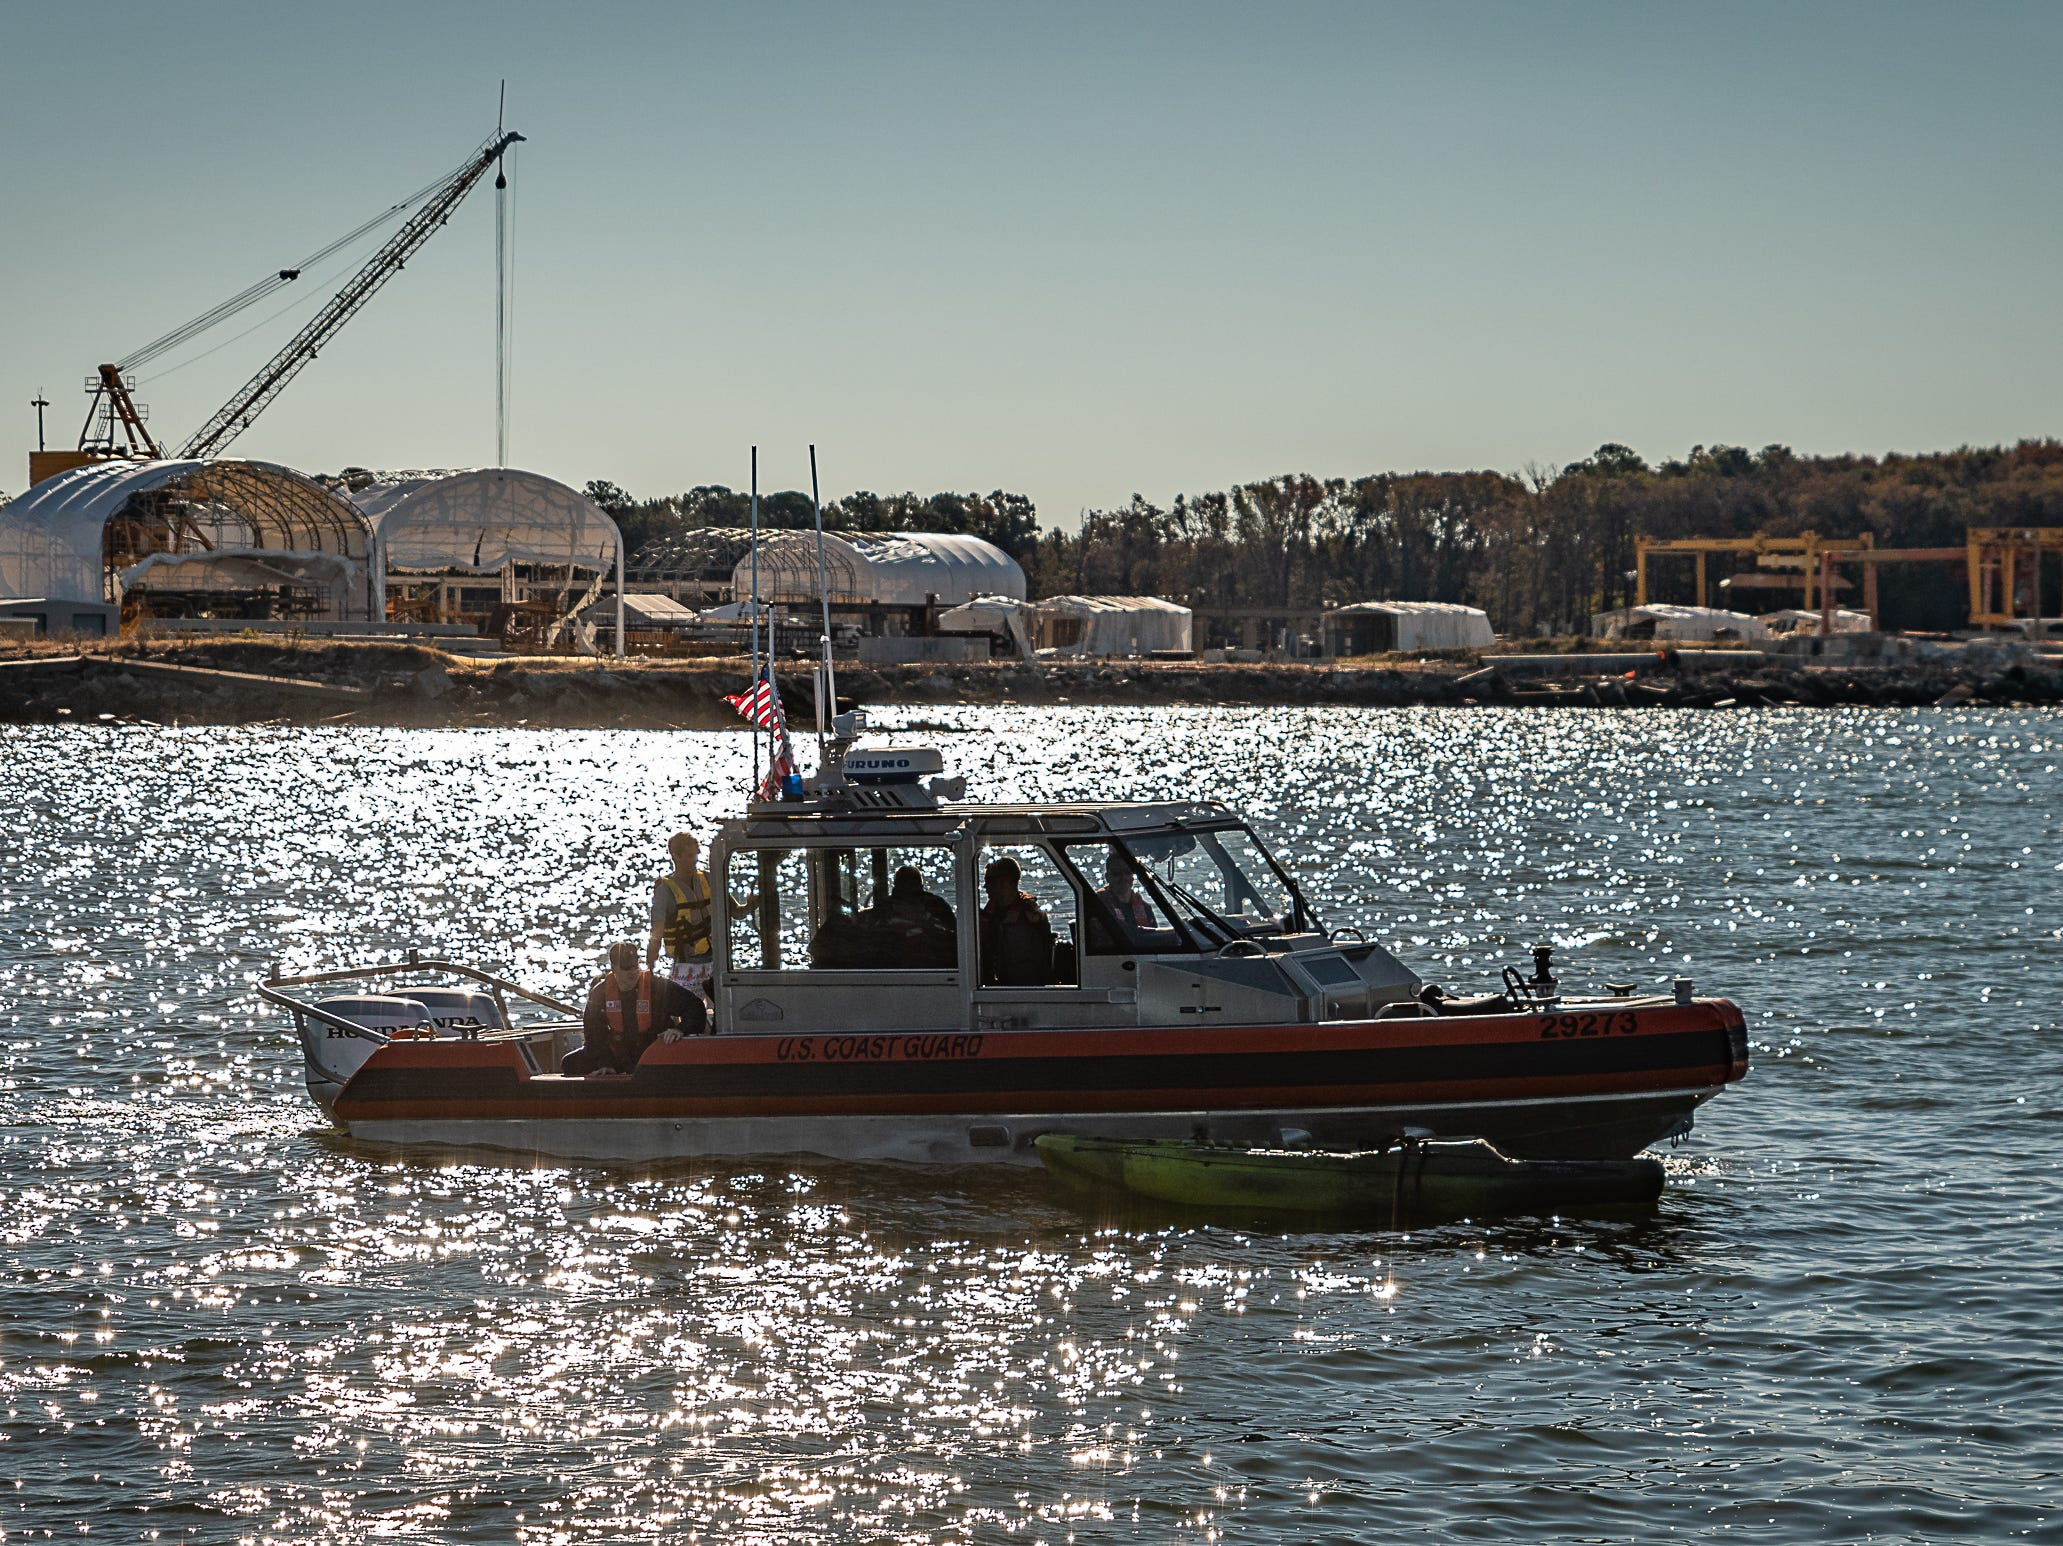 One of the two U.S. Coast Guard boats used during the cold-water survival demonstration patrols the water near Cape Charles, Virginia on Tuesday, Oct. 30, 2018.